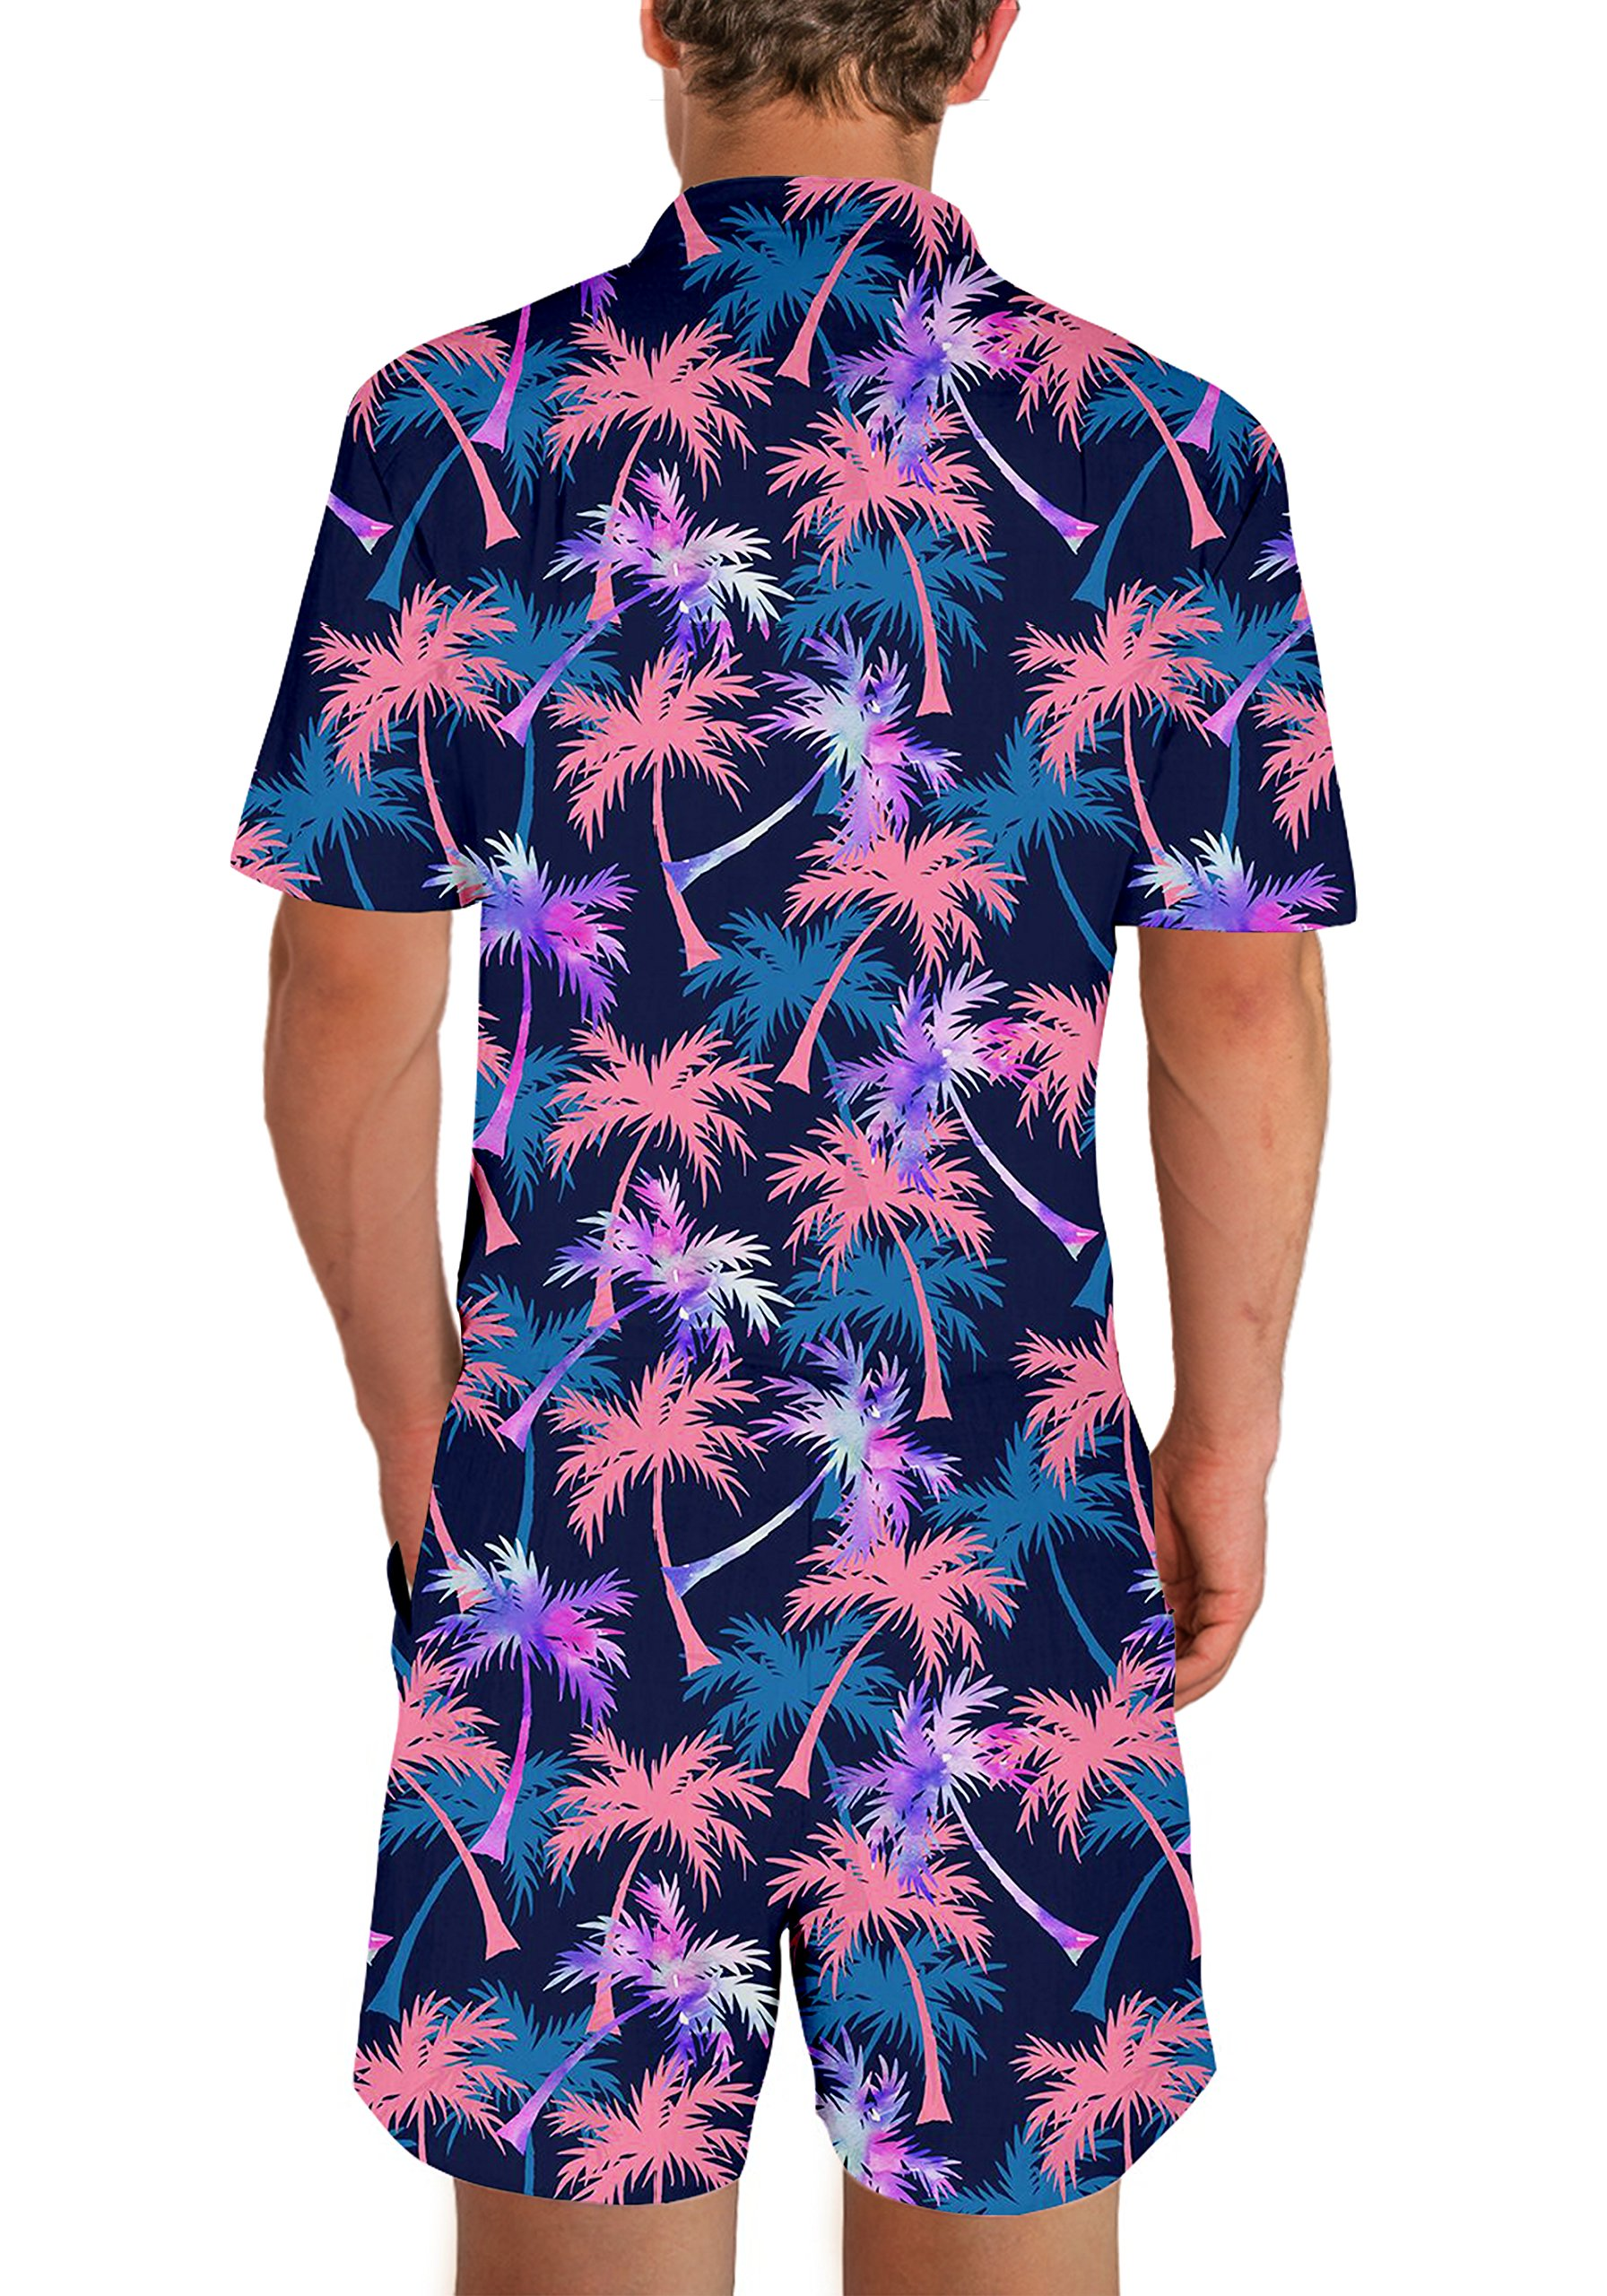 Goodstoworld Mens Jumpsuits 3D Tropical Leaves Print Zip up Romper Casual Grandad Shirt Cargo Shorts Overalls Playsuit for Men XXL by Goodstoworld (Image #3)